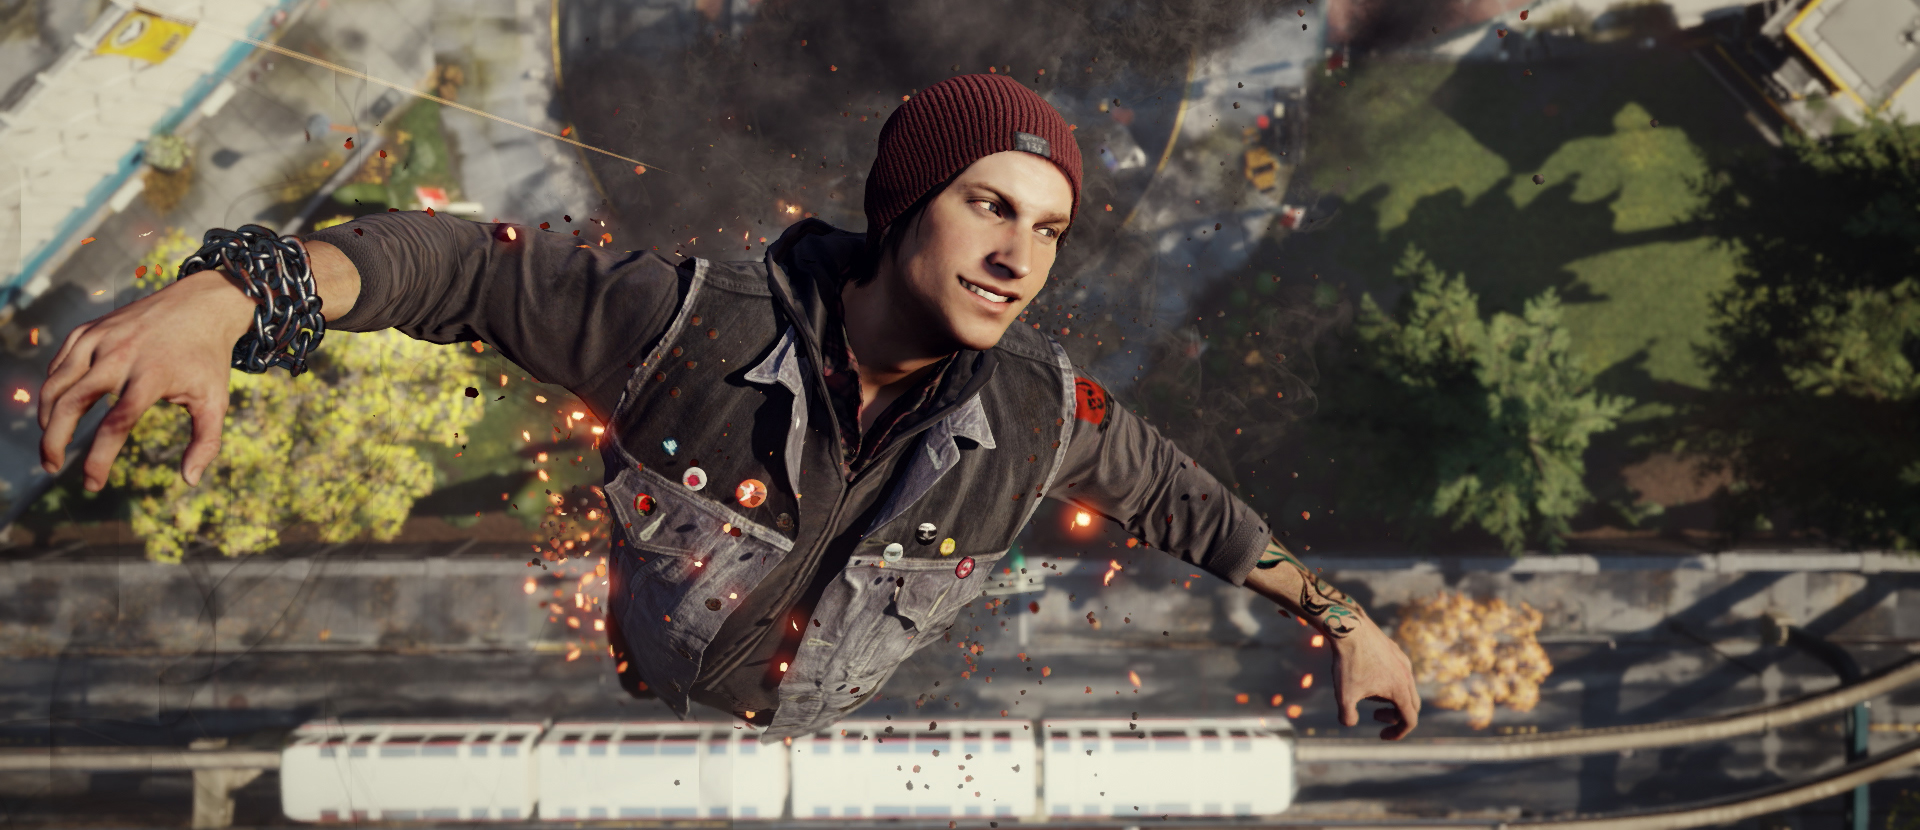 Infamous second son review slides